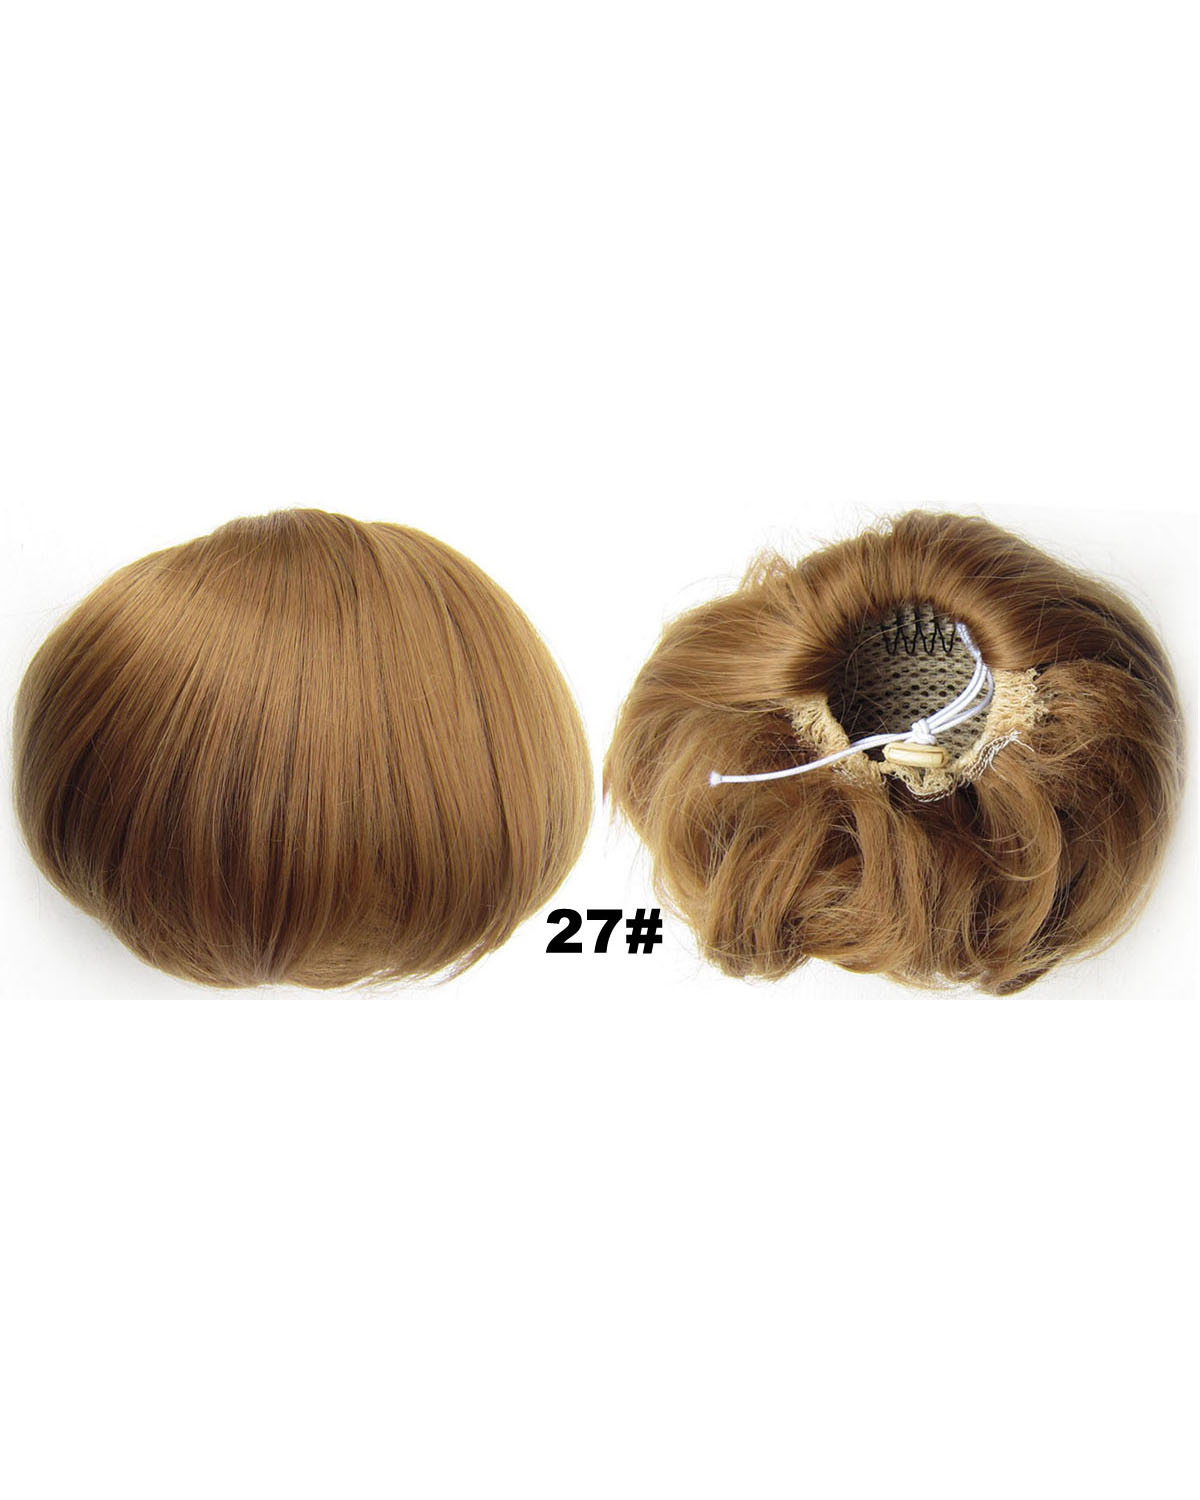 Ladies Beautiful Straight Short Hair Buns Drawstring Synthetic Hair Extension Bride Scrunchies 27#